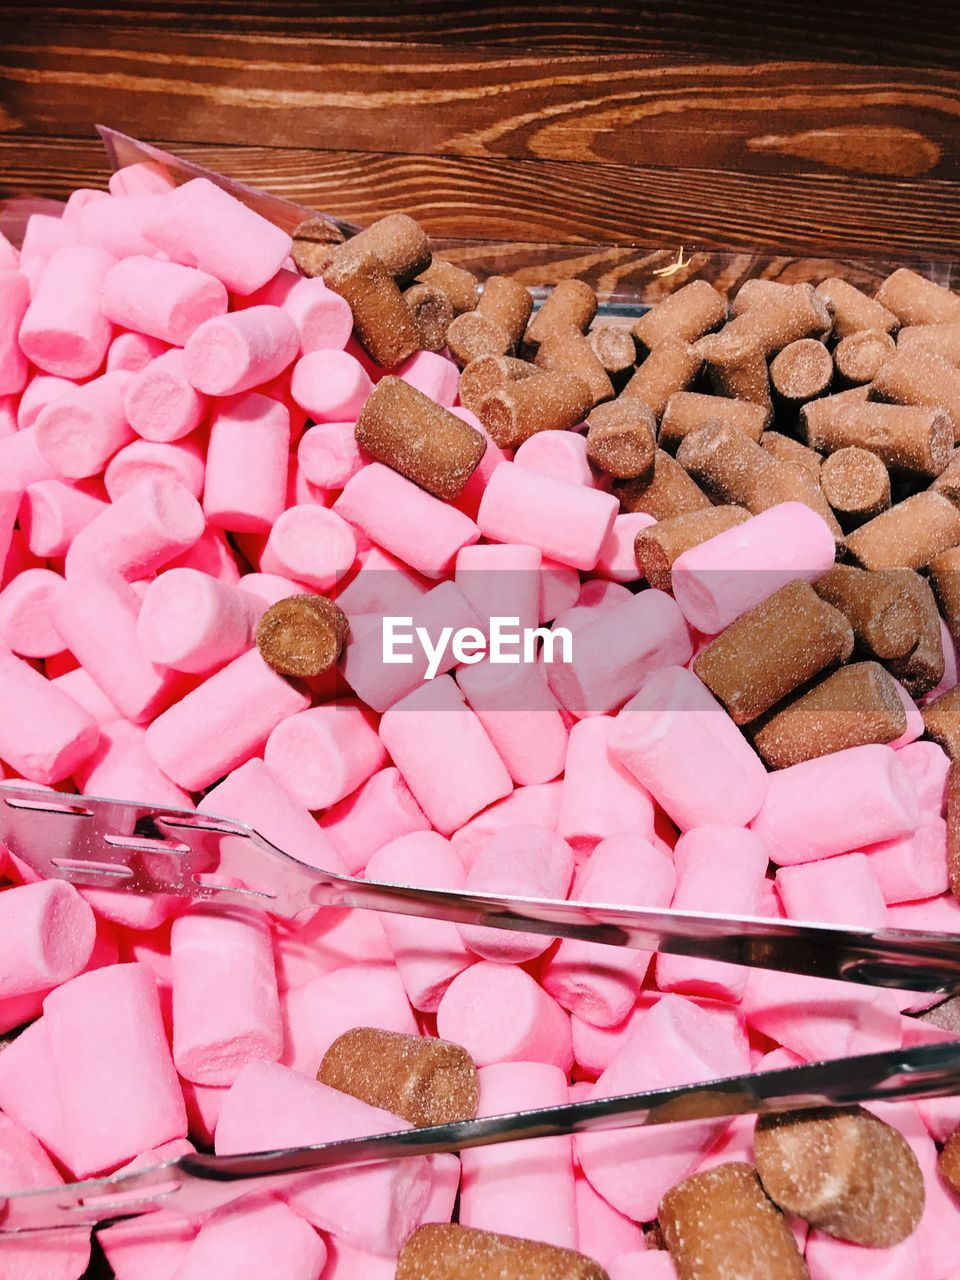 pink color, large group of objects, sweet food, food, sweet, food and drink, still life, indulgence, indoors, no people, freshness, candy, unhealthy eating, choice, heart shape, variation, temptation, abundance, baked, high angle view, positive emotion, snack